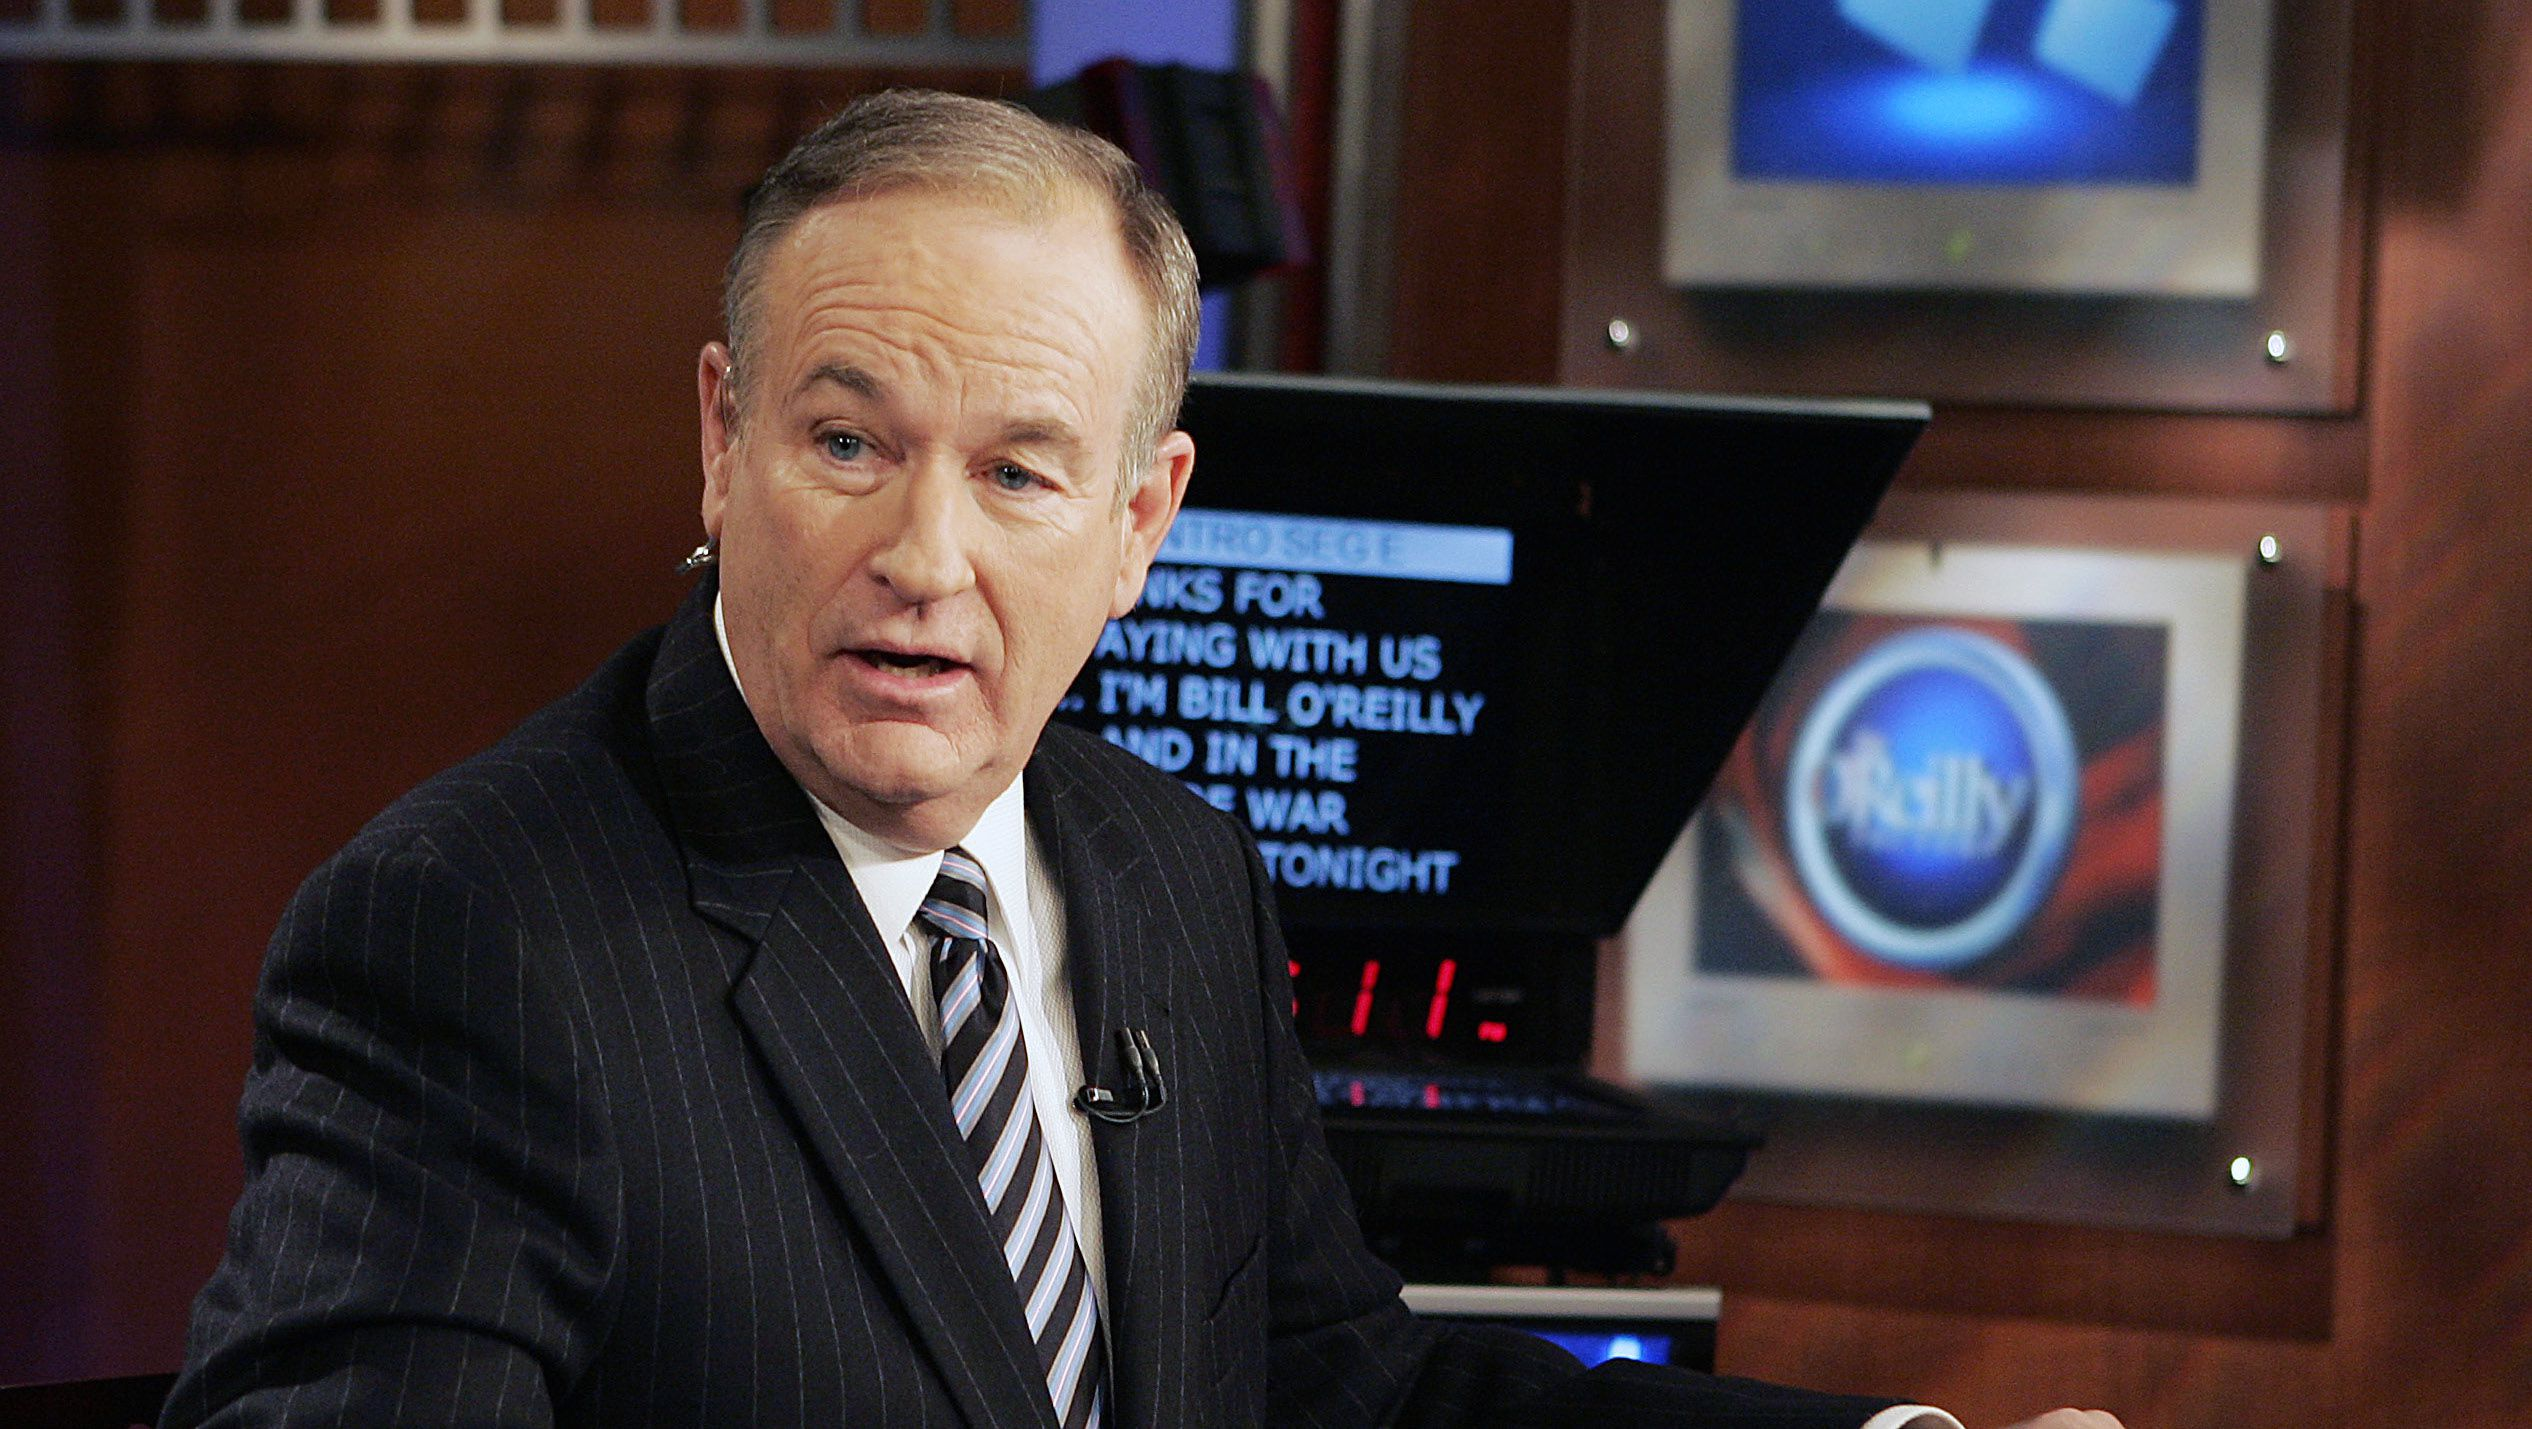 """**FILE**Fox News commentator Bill O'Reilly appears on the Fox News show, """"The O'Reilly Factor,"""" on Jan. 18, 2007 in New York. O'Reilly and Geraldo Rivera said Friday, April 6, 2007, there were no hard feelings after they engaged in a shouting match over illegal immigration on Fox News Channel's """"The O'Reilly Factor"""" Thursday night.(AP Photo/Jeff Christensen)"""